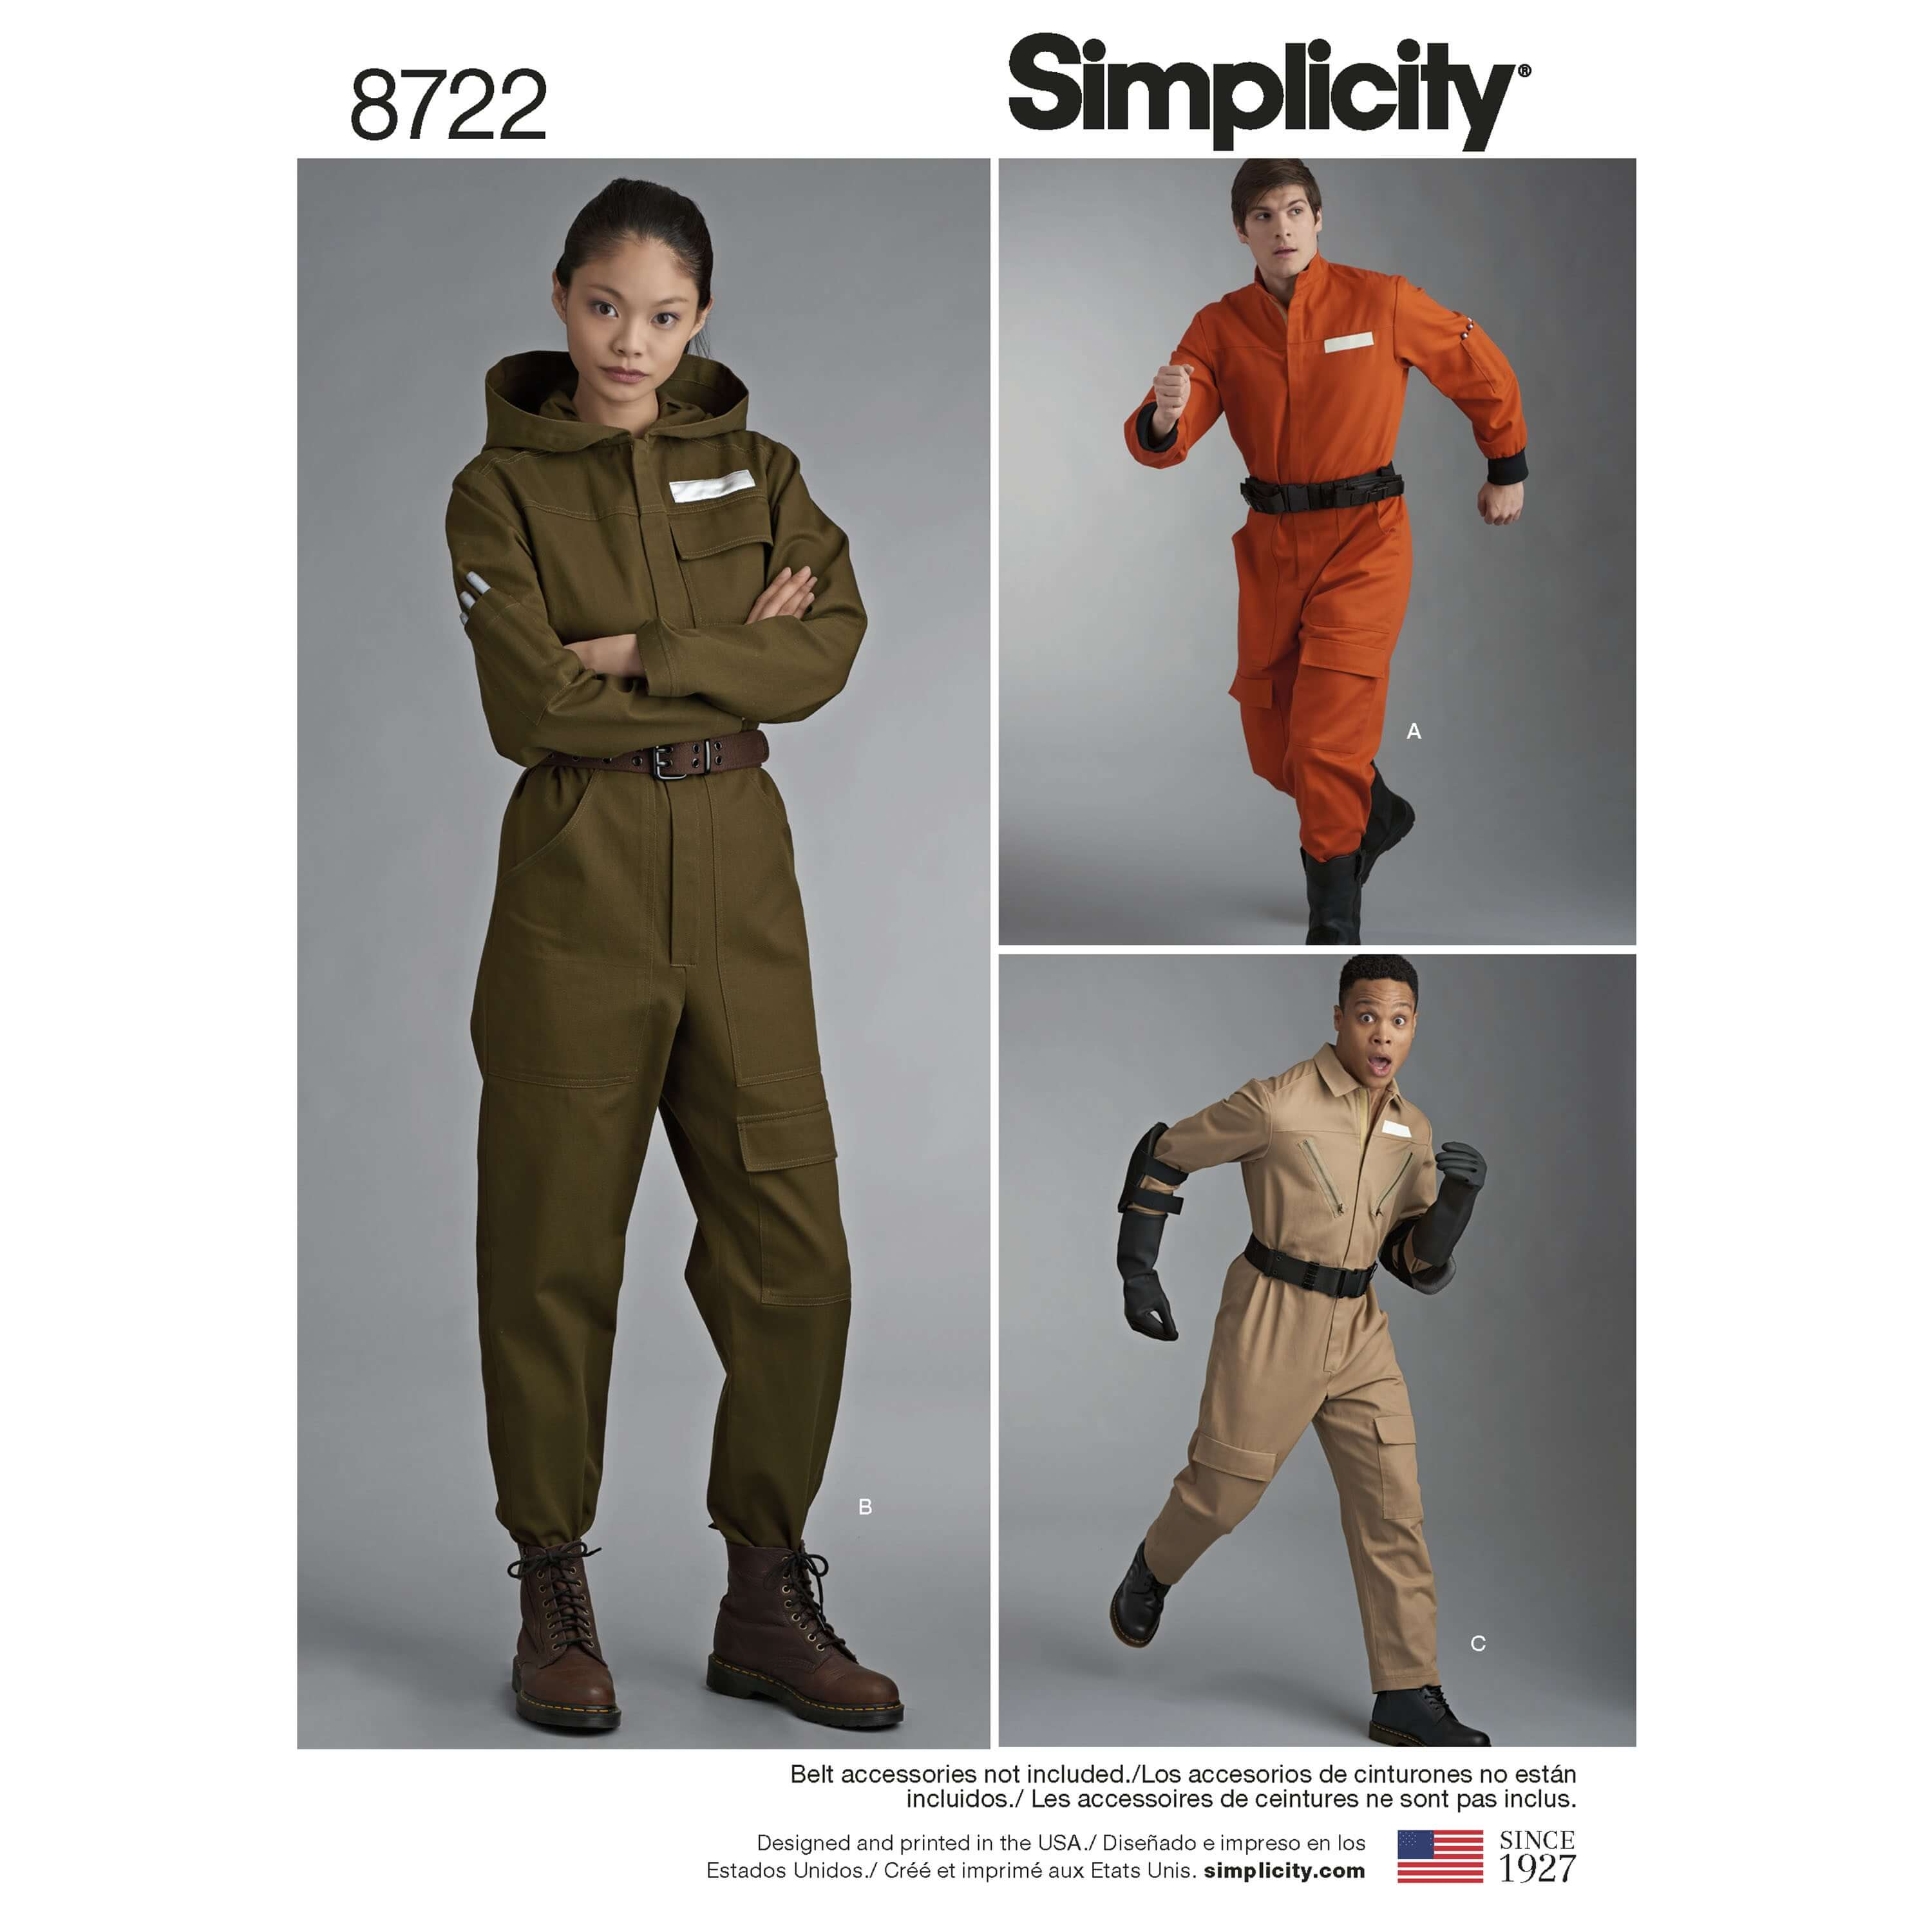 Simplicity Sewing Pattern 8722 Misses Men's & Teens Overall Costume